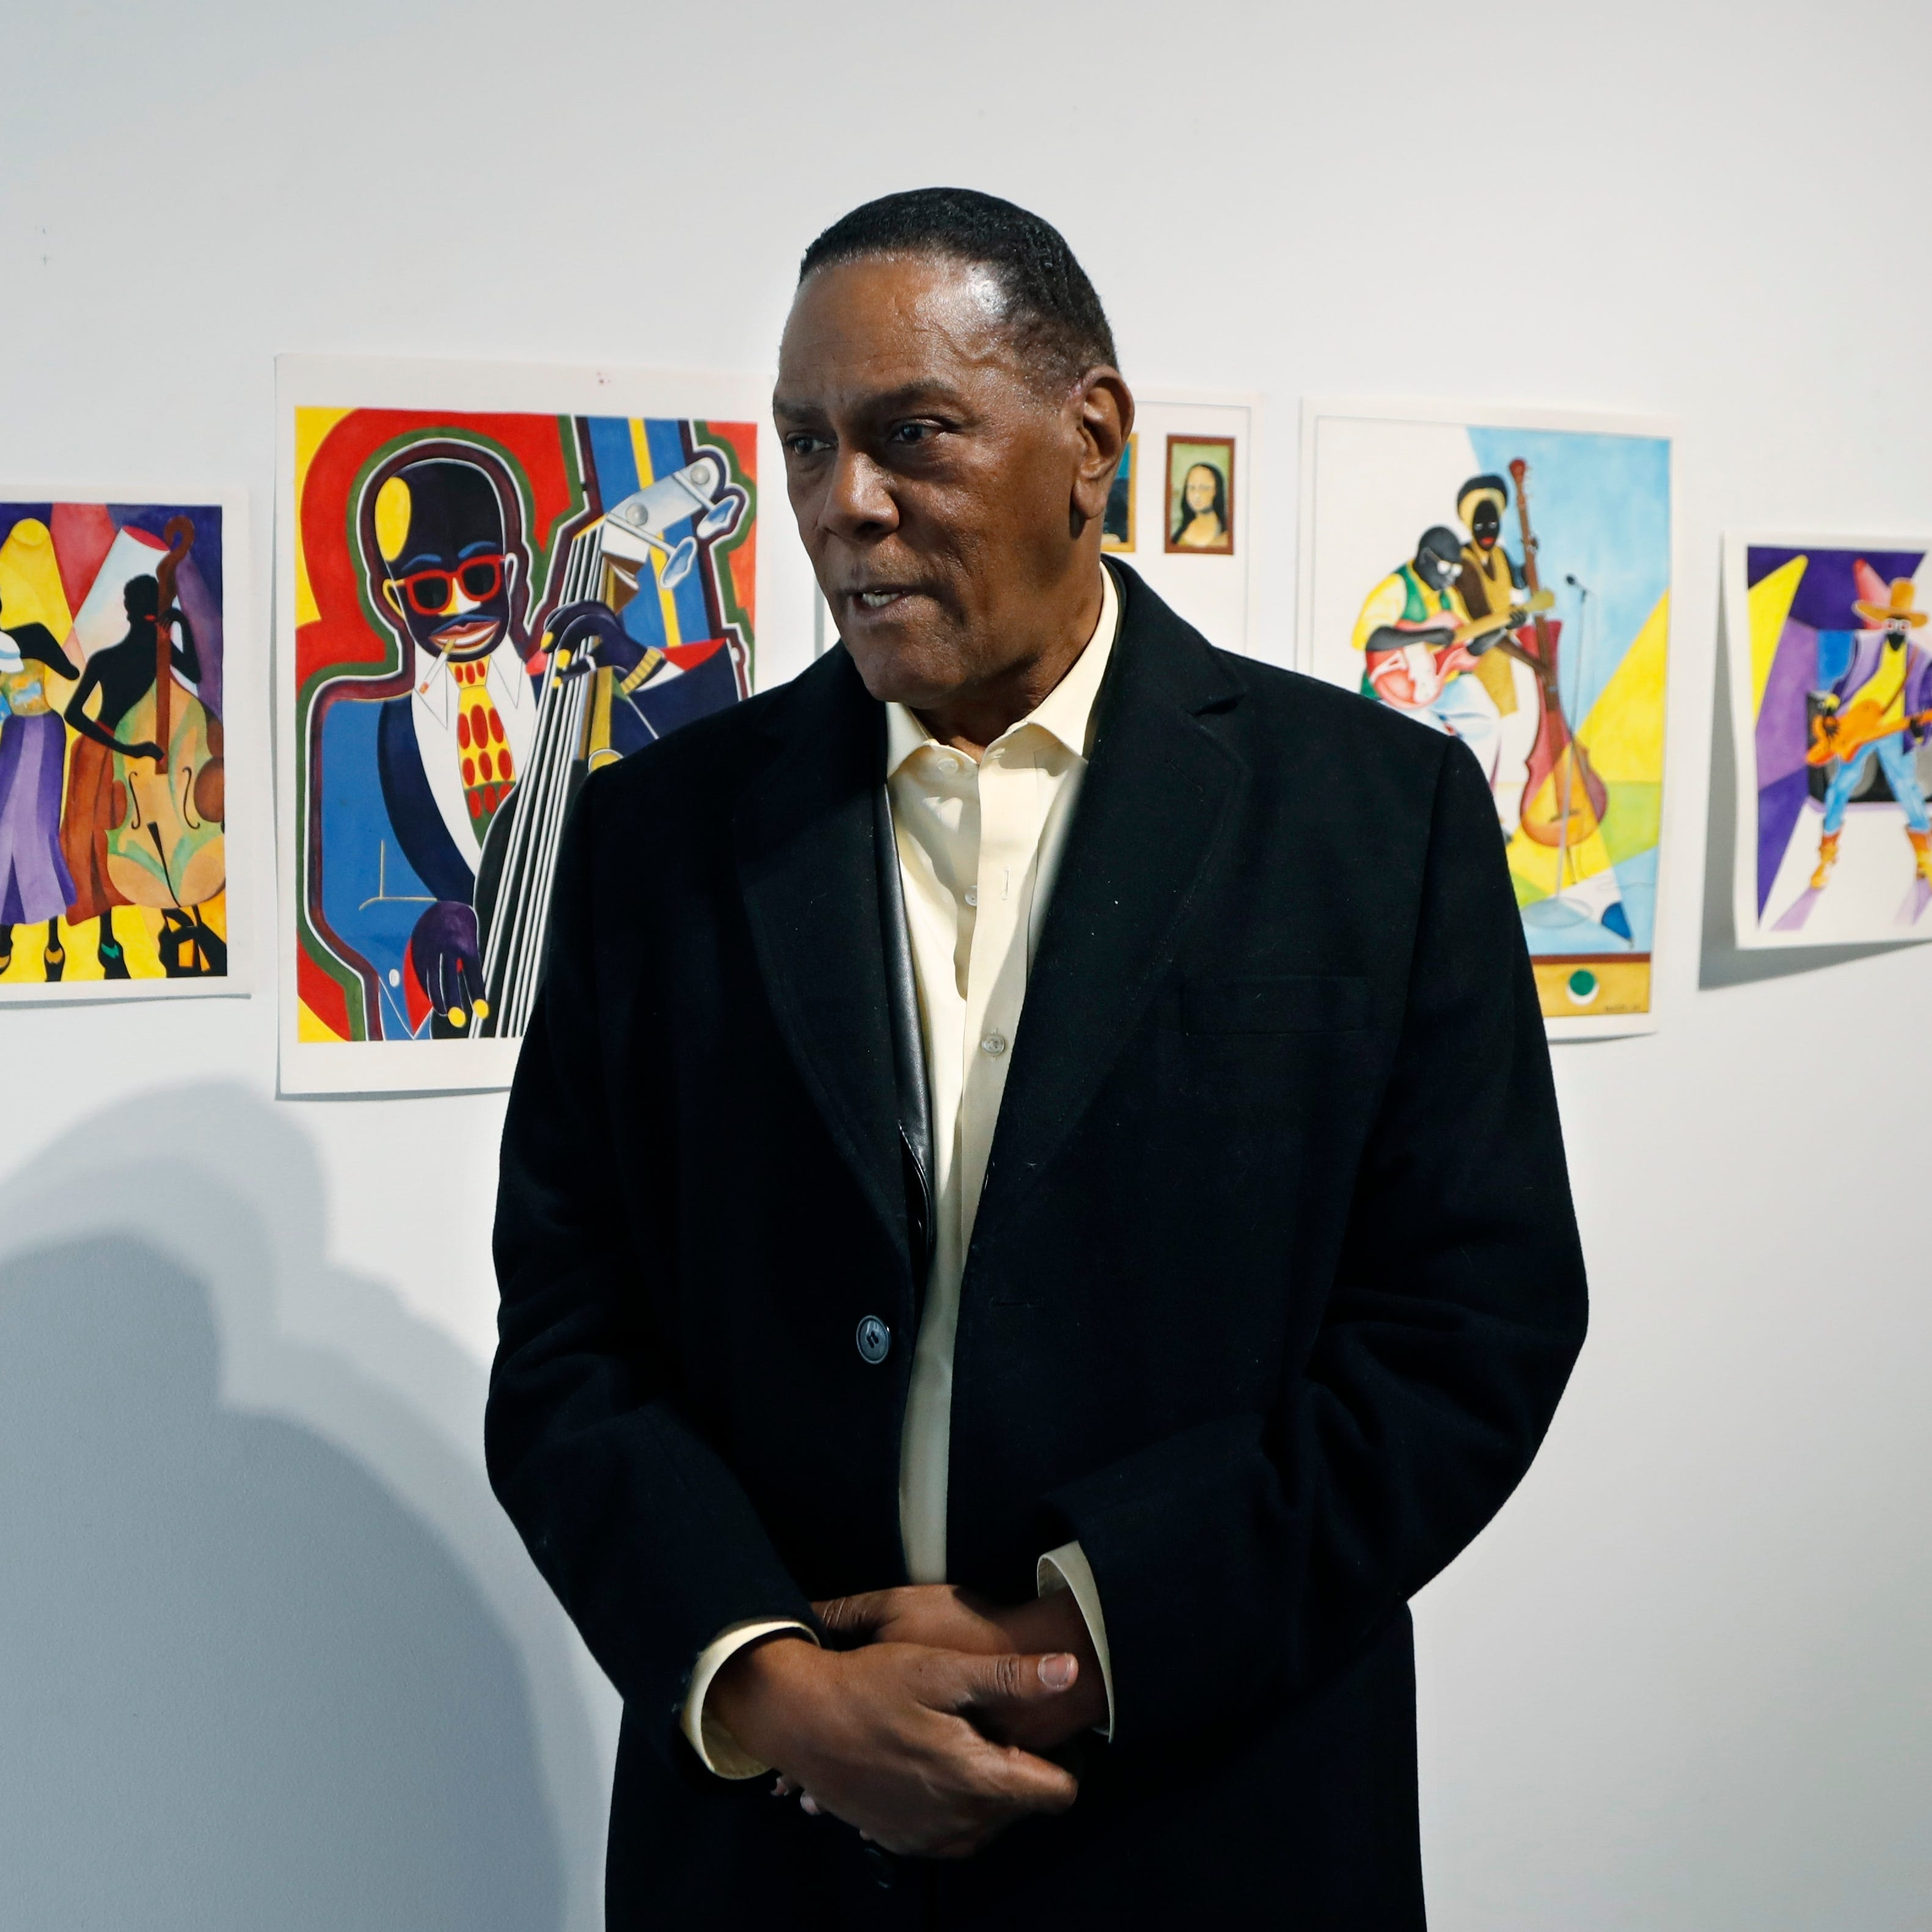 Michigan man exonerated after 45 years sells his prison art to get by